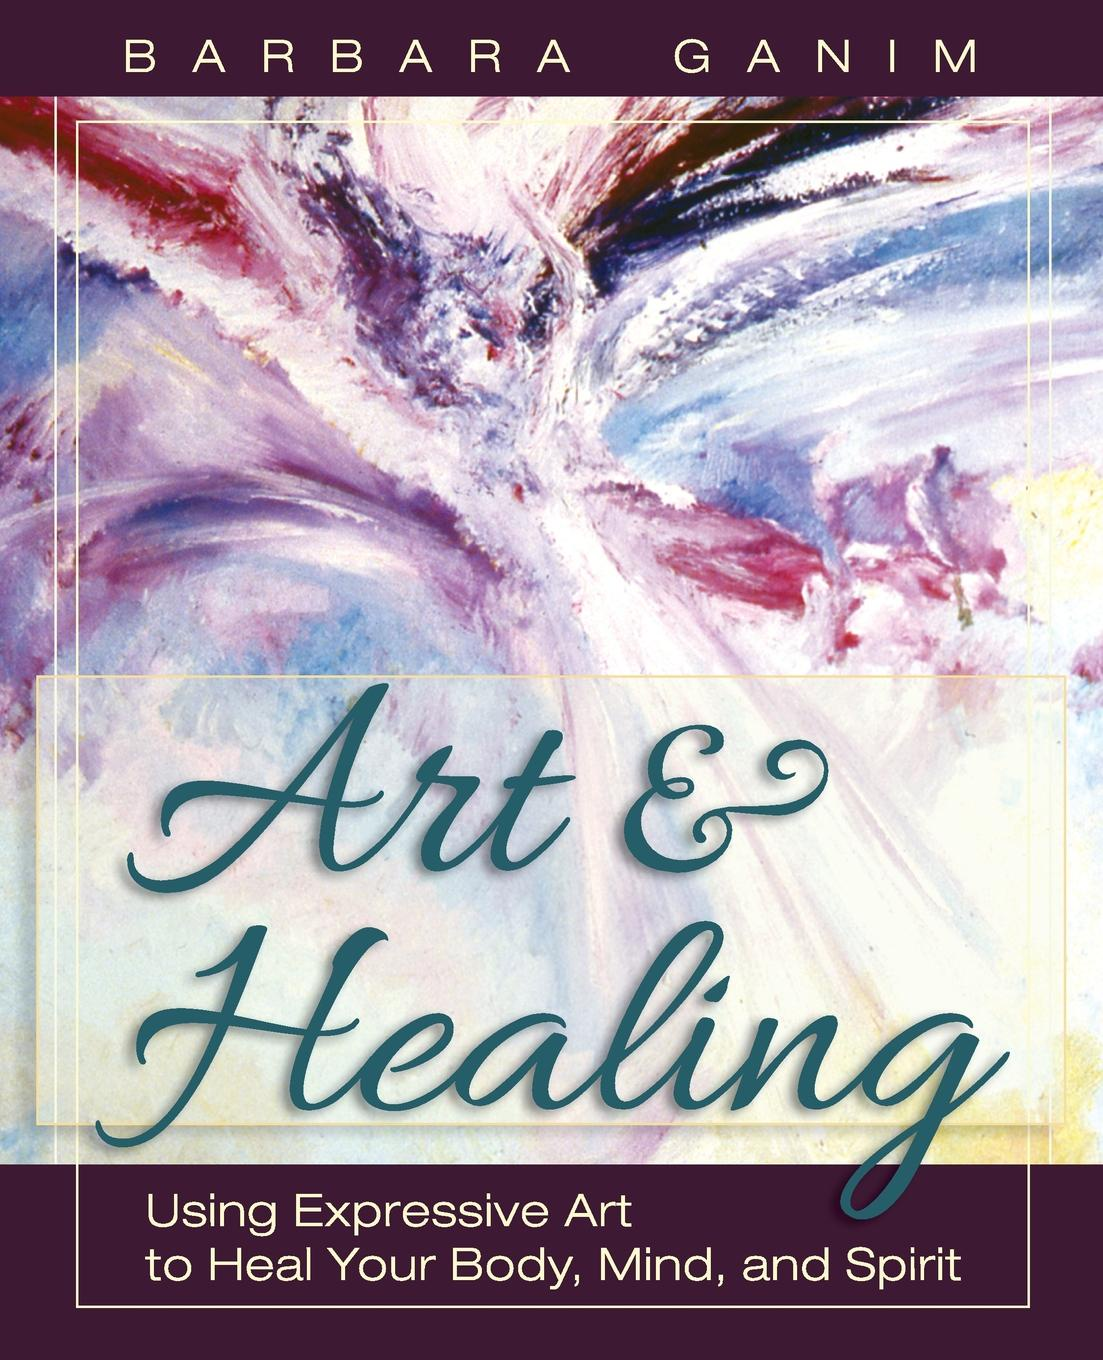 Barbara Ganim Art and Healing. Using Expressive Art to Heal Your Body, Mind, and Spirit nancy liebler ph d healing depression the mind body way creating happiness with meditation yoga and ayurveda